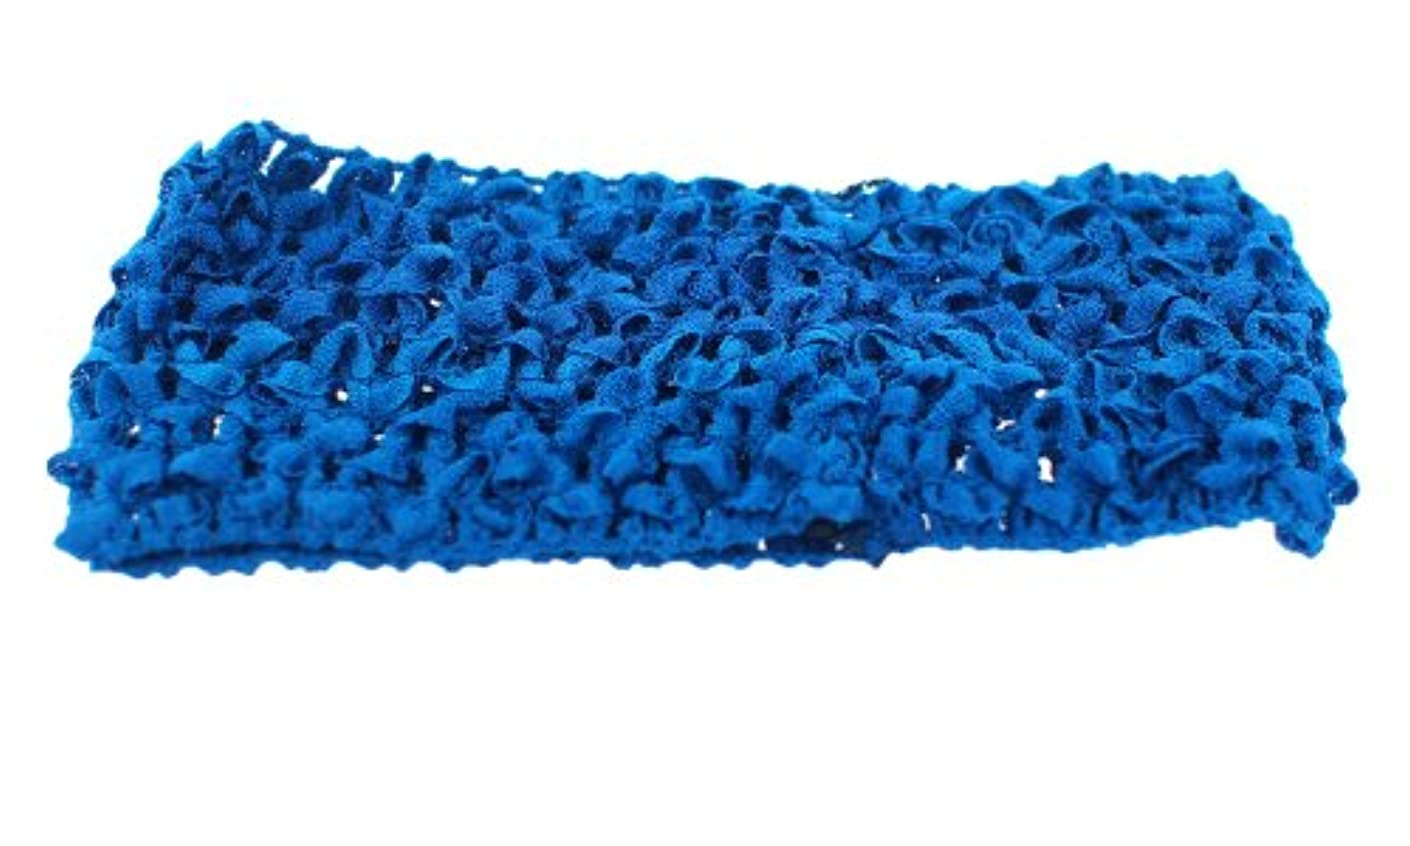 Trimweaver 10-Piece Woven Crochet Fabric Headbands, 2.5-Inch, Electric Blue